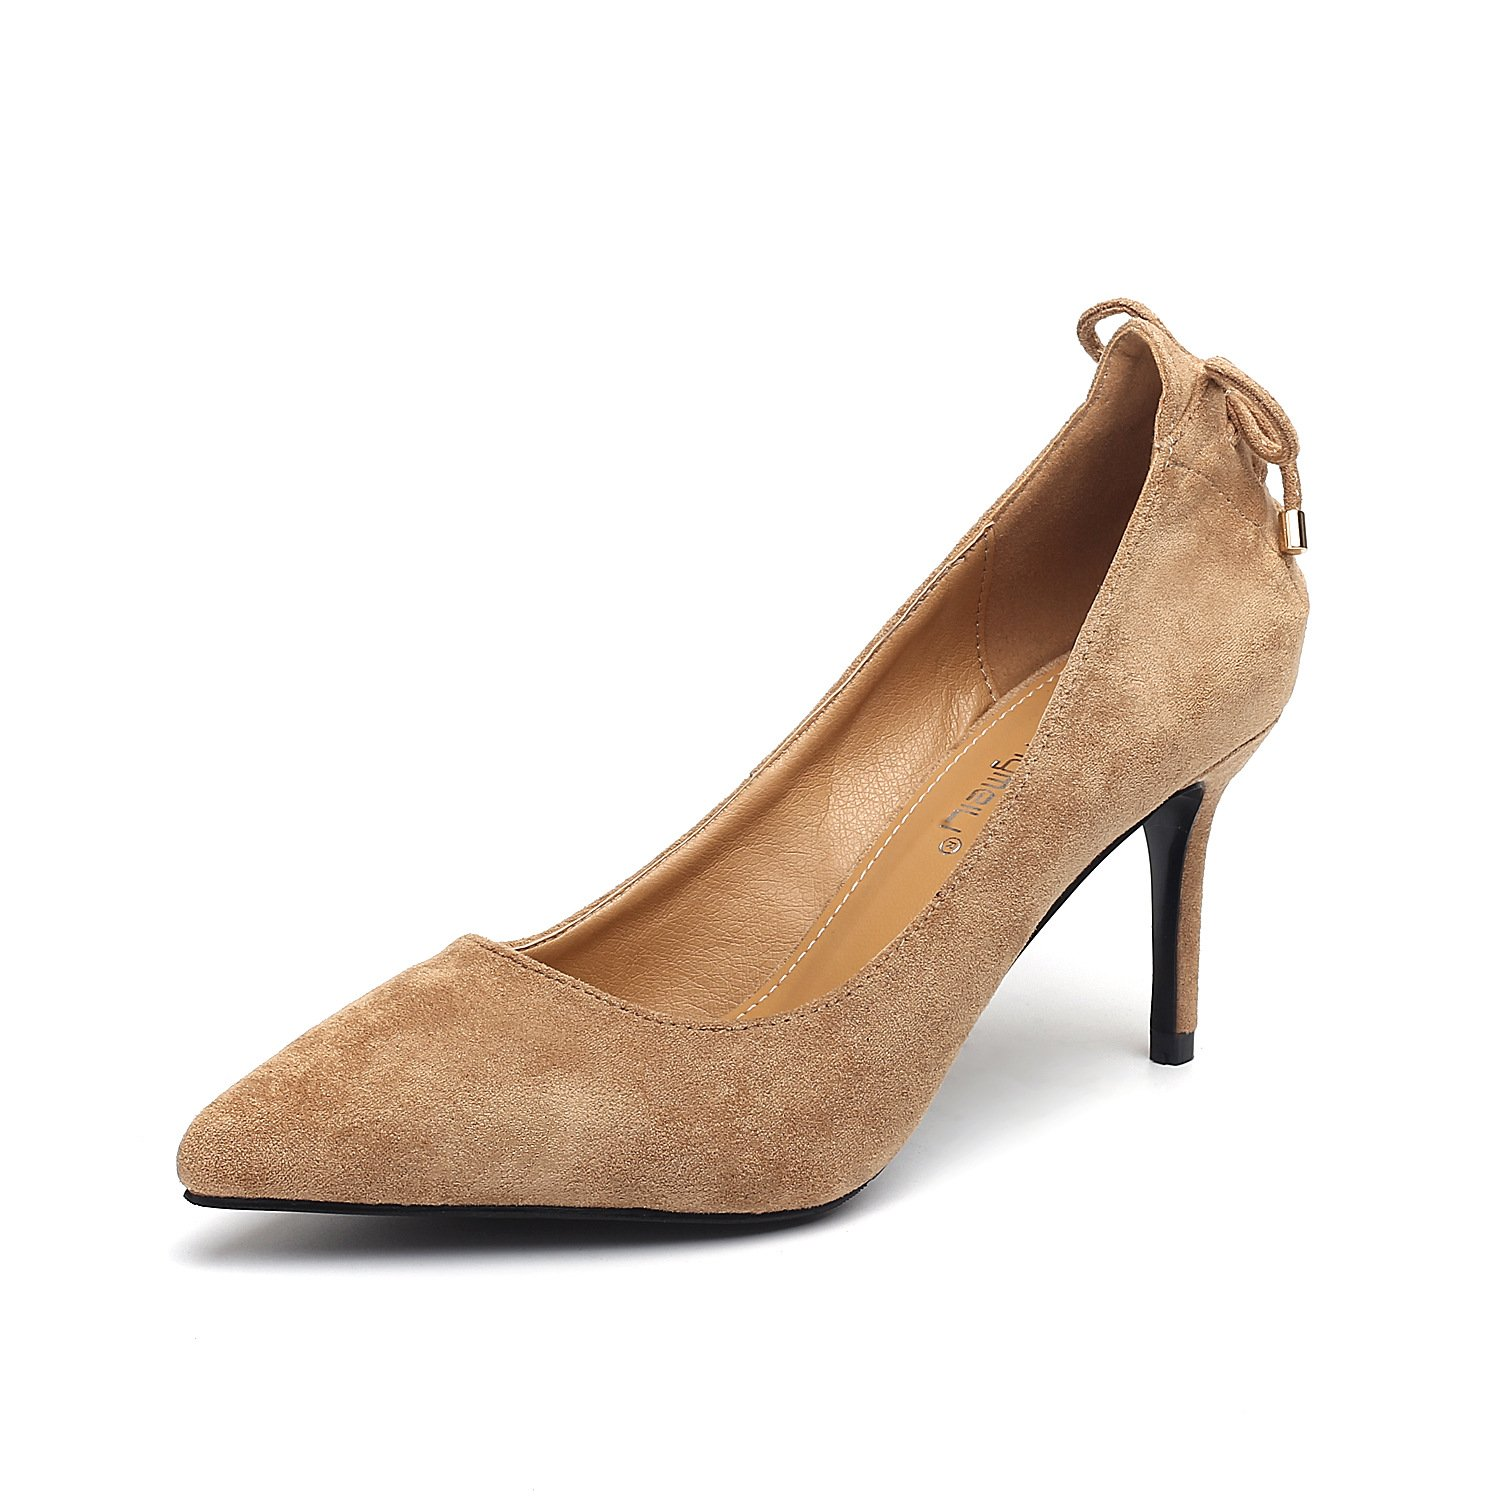 Women shoes high-heeled shoes single shoes elegant satin rear tip fine with women's shoes tied with single shoes, beige 36